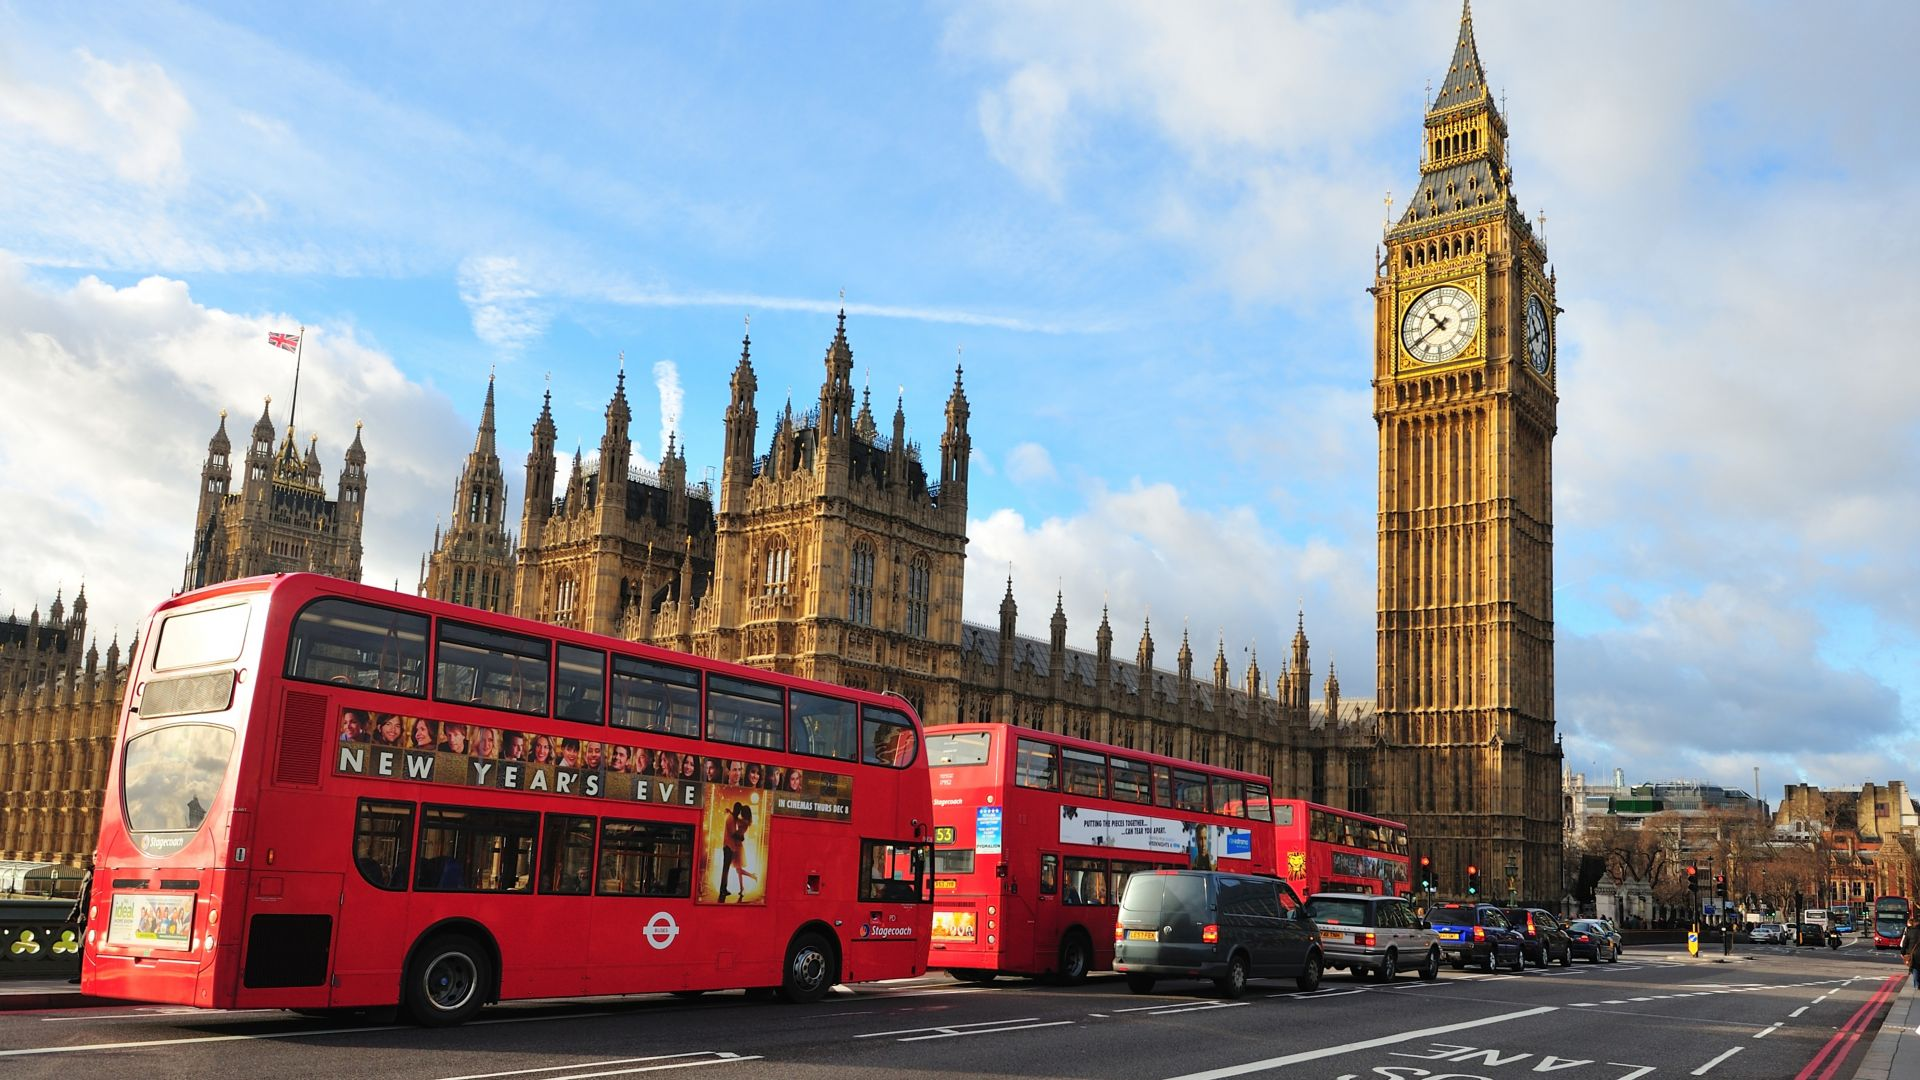 London, England, Big Ben, Westminster Abbey, city, bus, travel, tourism